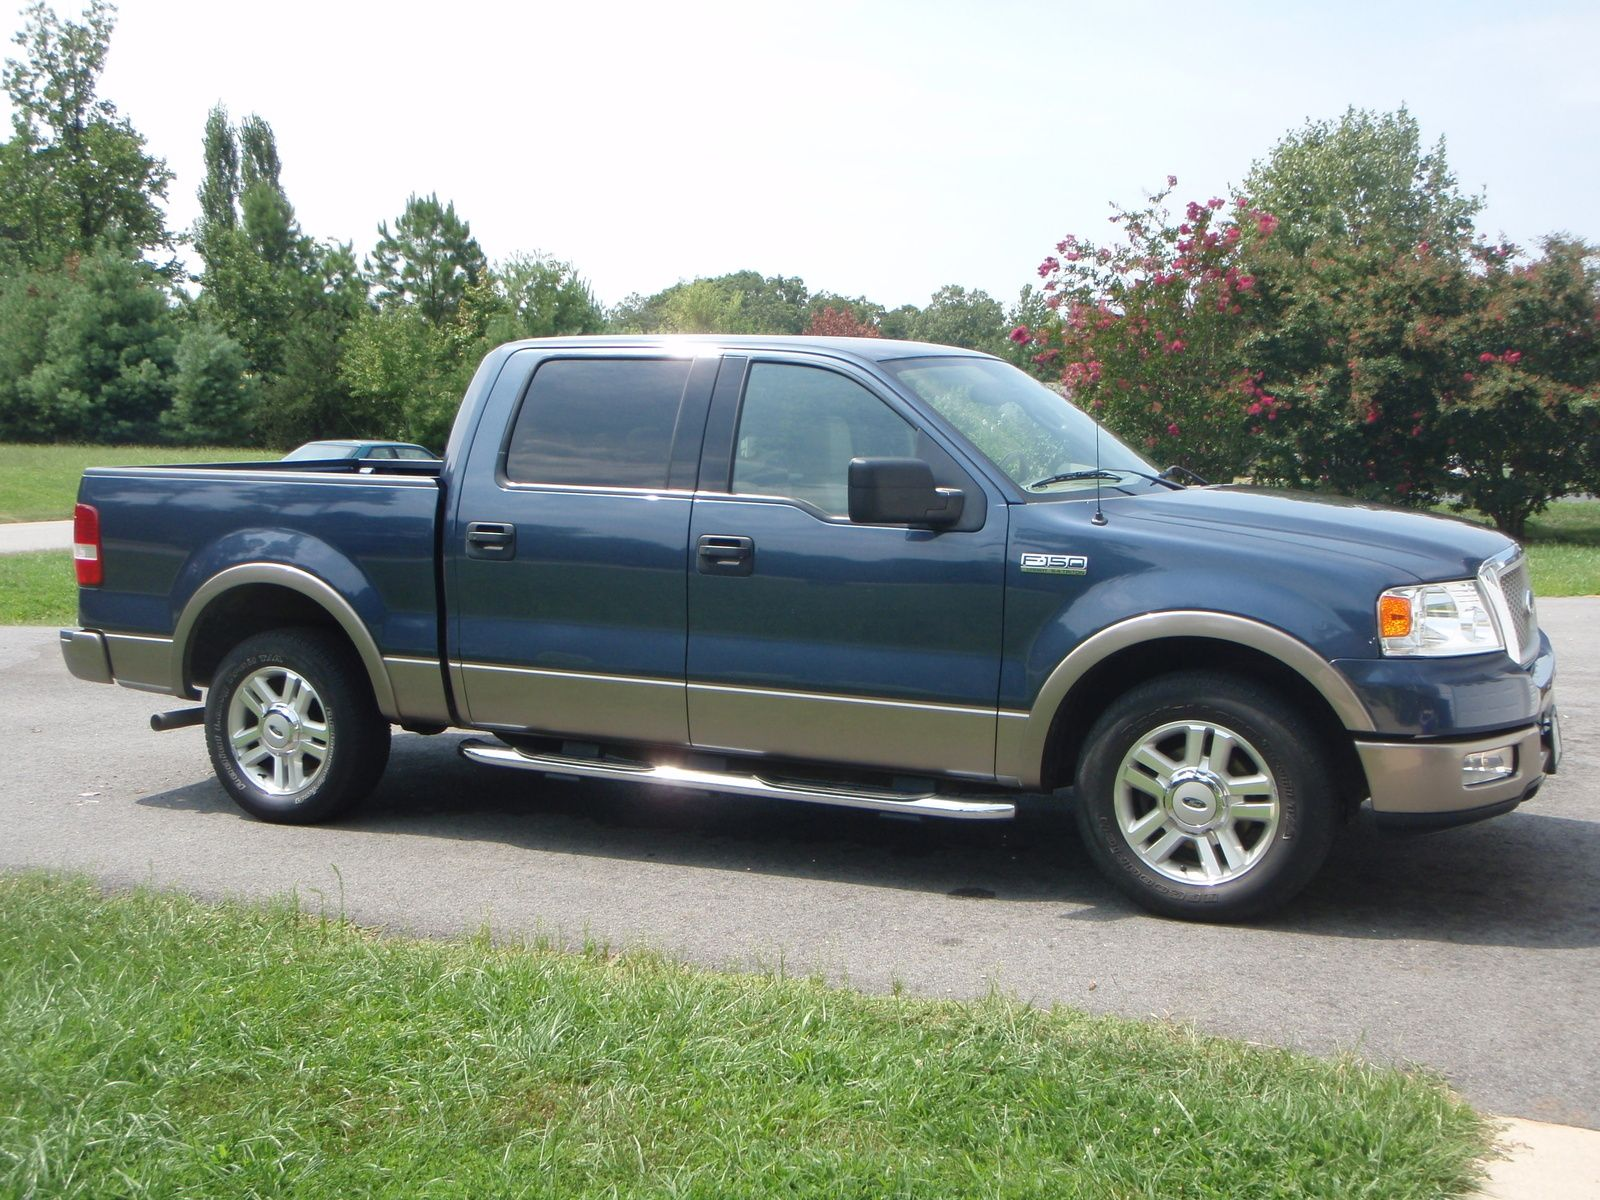 2004 Ford F 150 Supercrew Lariat 4x4 Ford F150 2004 Ford F150